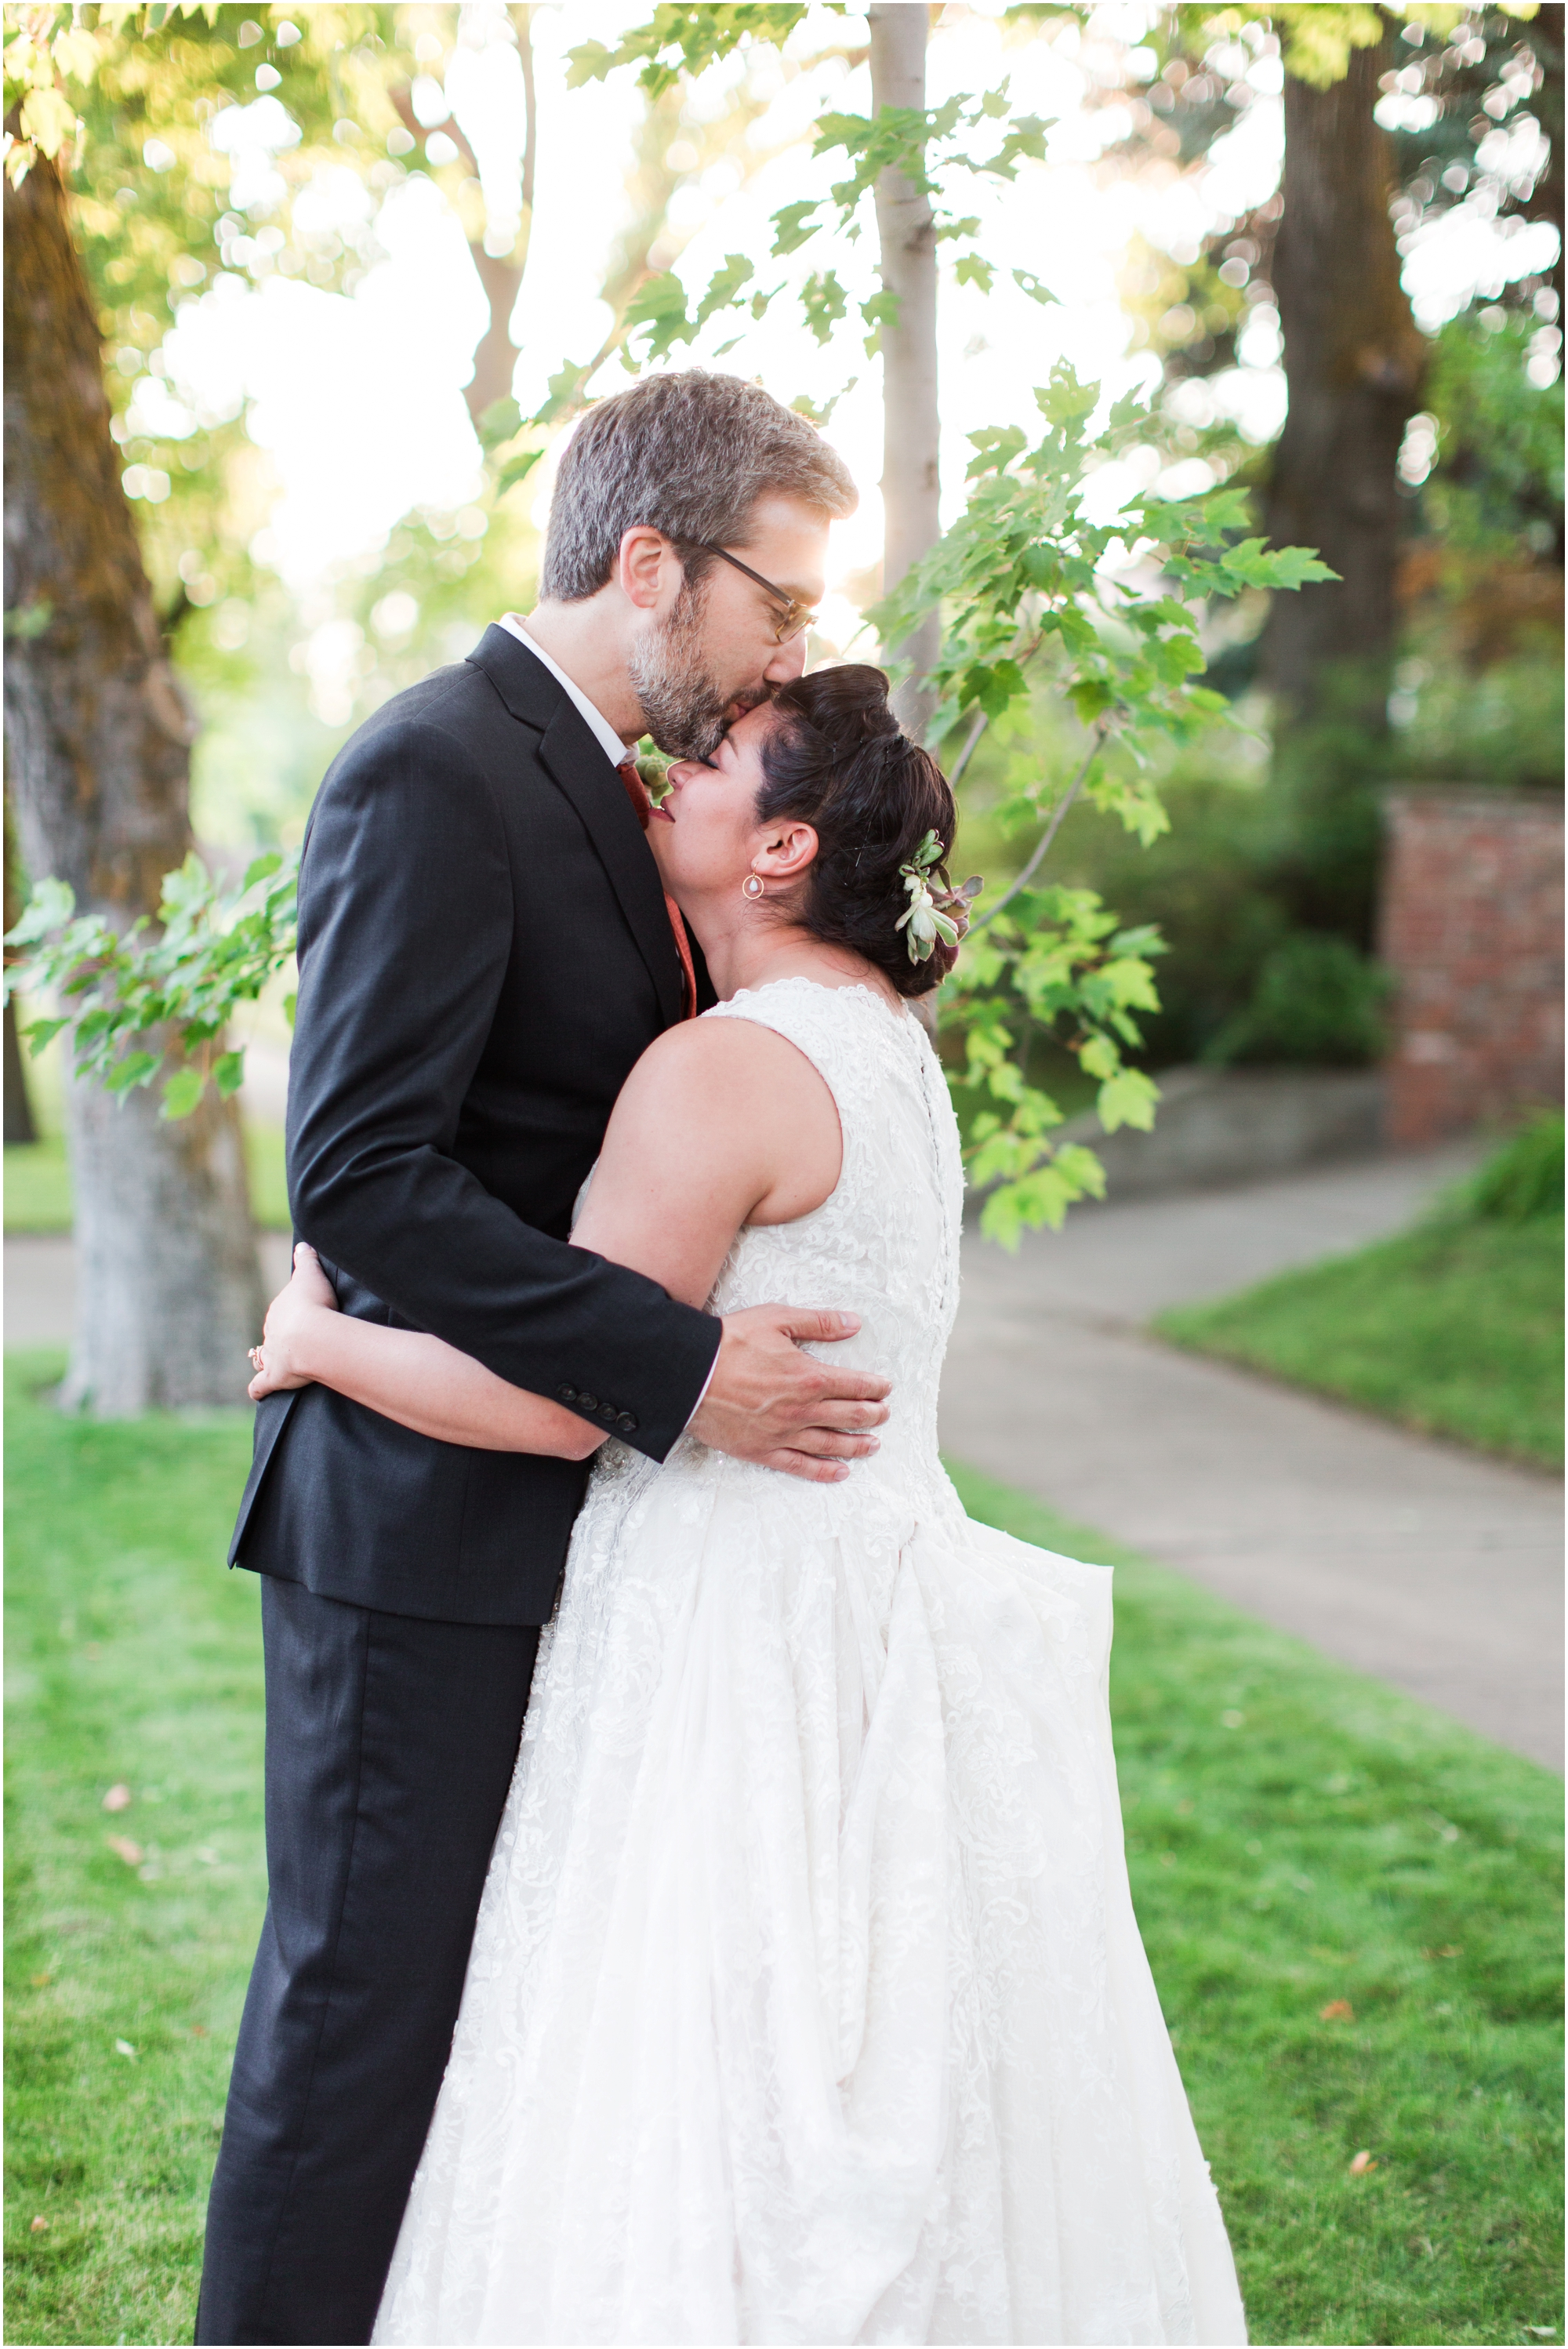 Garden wedding in Ellensburg, WA. Photos by Briana Calderon Photography based in the greater Seattle-Tacoma Area._1357.jpg